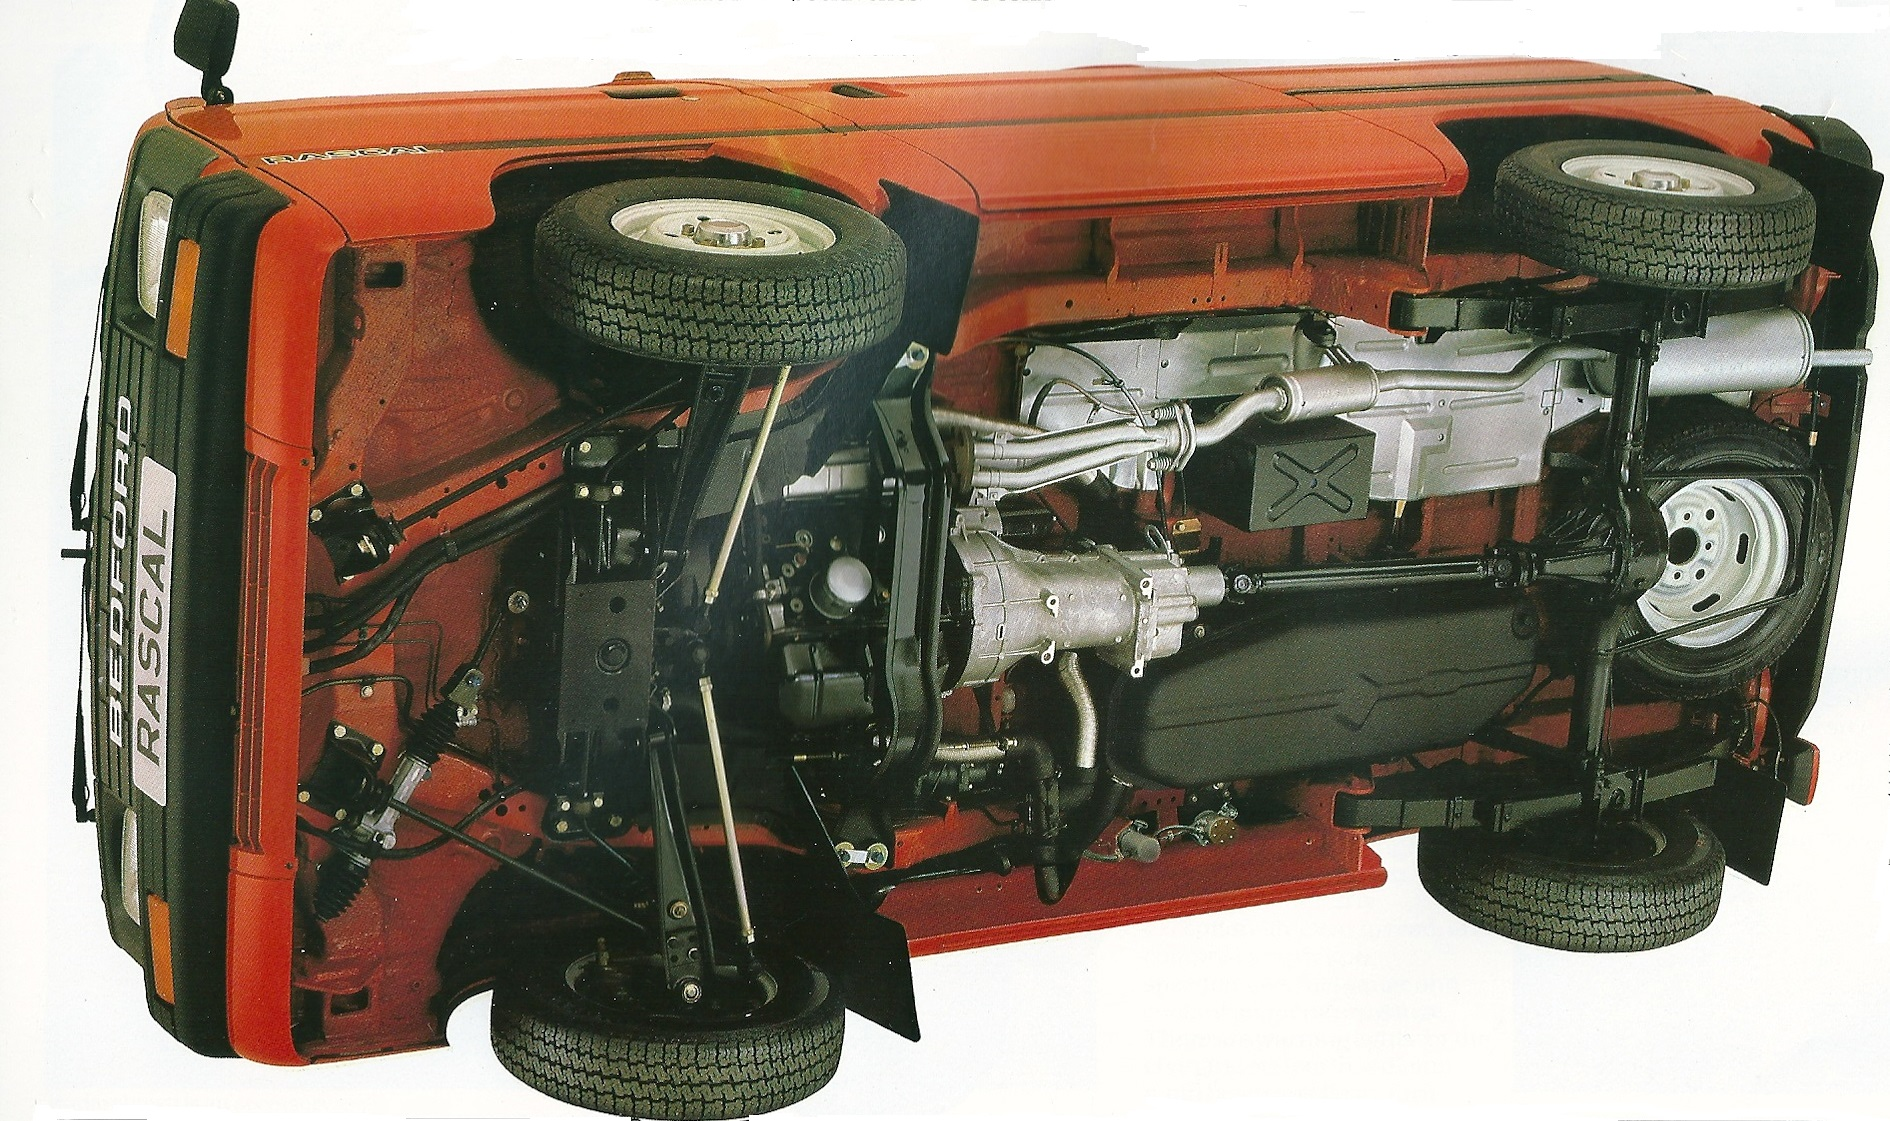 Rules For Rebody On Existing Chassis - Page 1 - Kit Cars